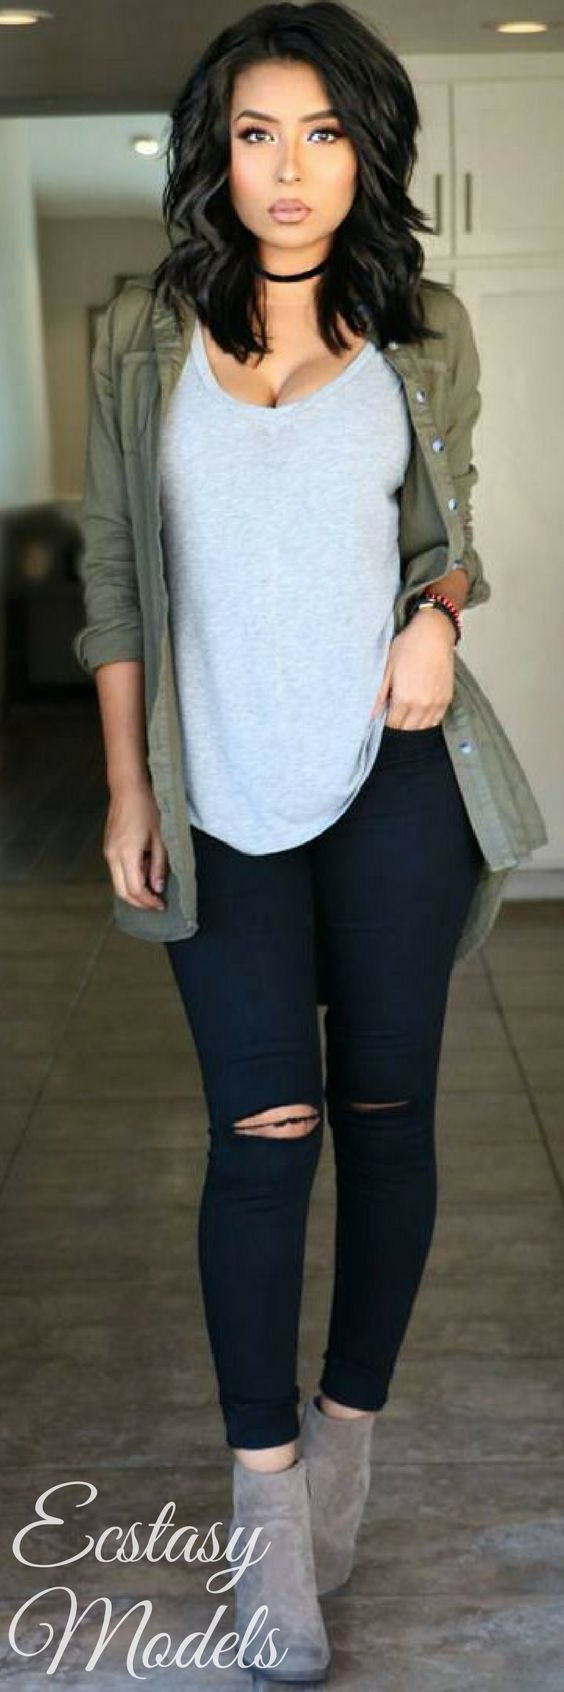 d532264326 14 stylish ways to wear ankle boots in casual spring outfits